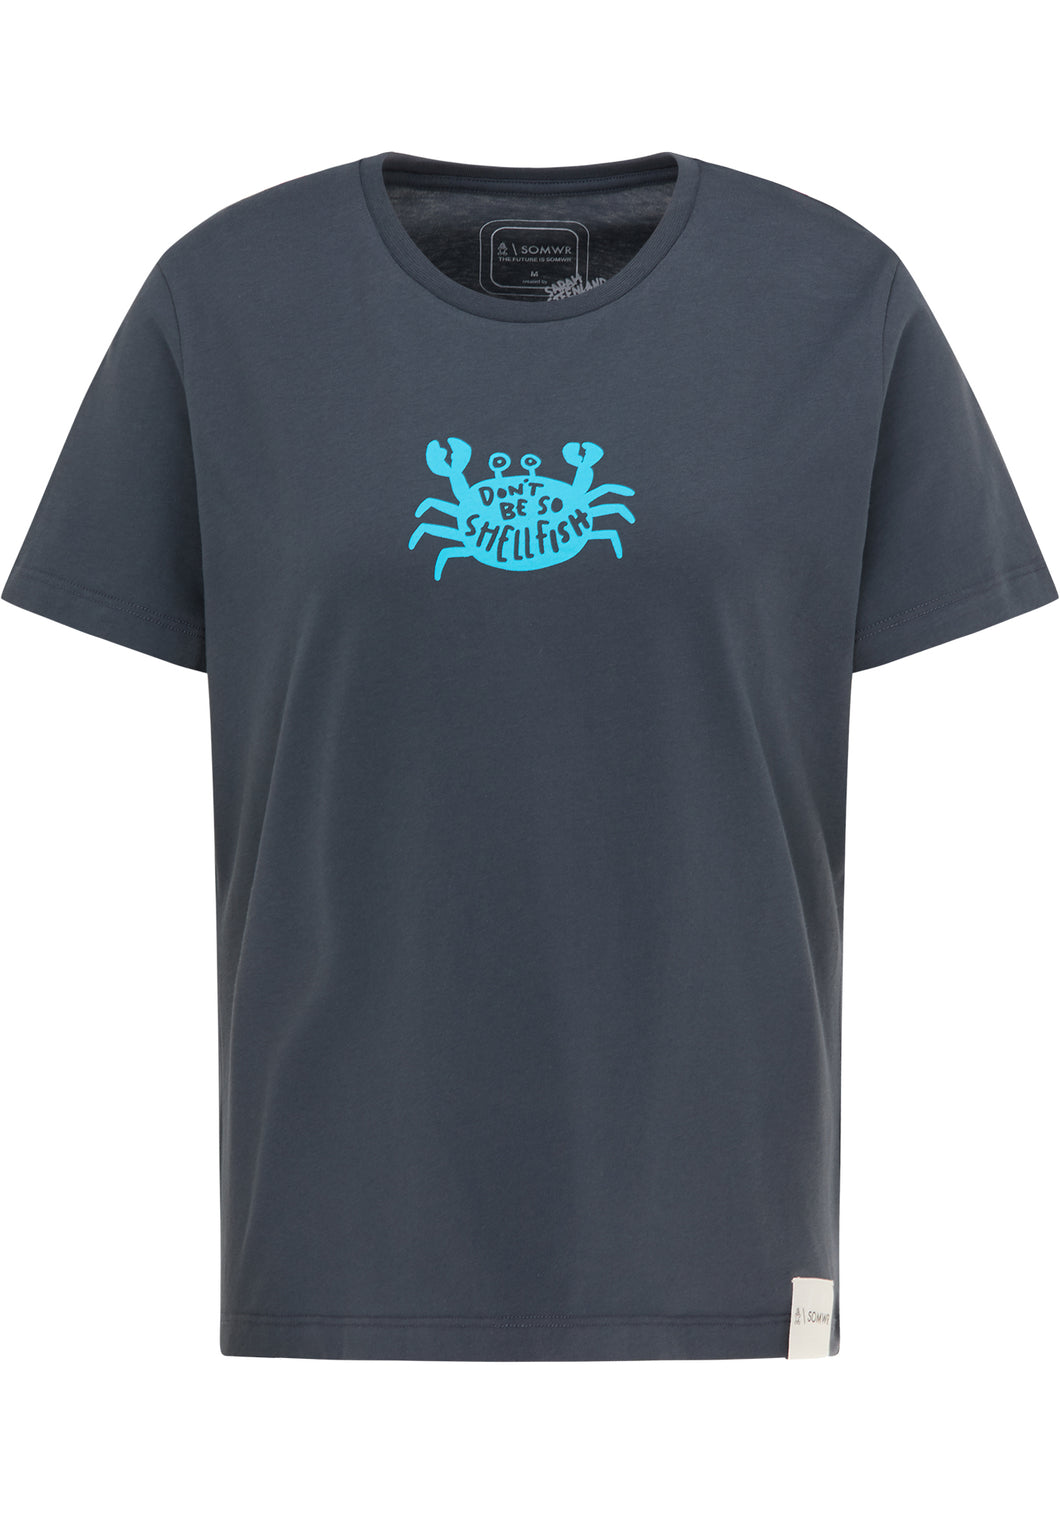 Shirt Shellfish